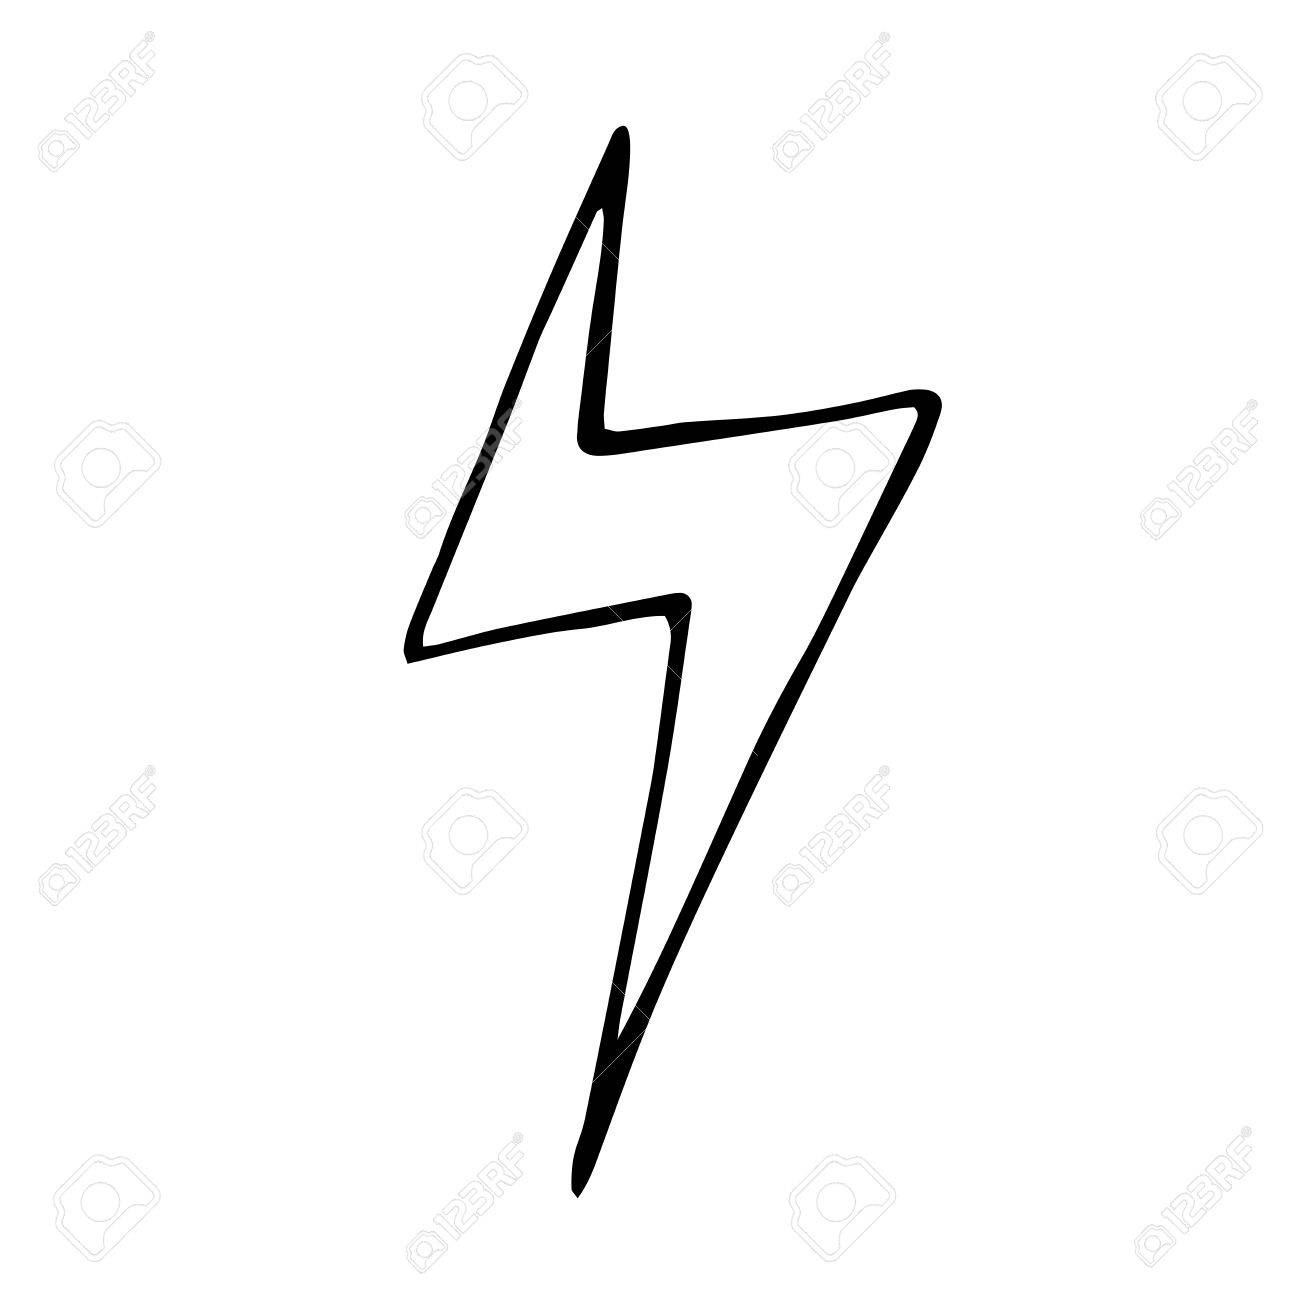 Lightning bolt doodle. vector hand drawn illustration for design light sign Stock Vector -  sc 1 st  123RF Stock Photos & Lightning Bolt Doodle. Vector Hand Drawn Illustration For Design ... azcodes.com